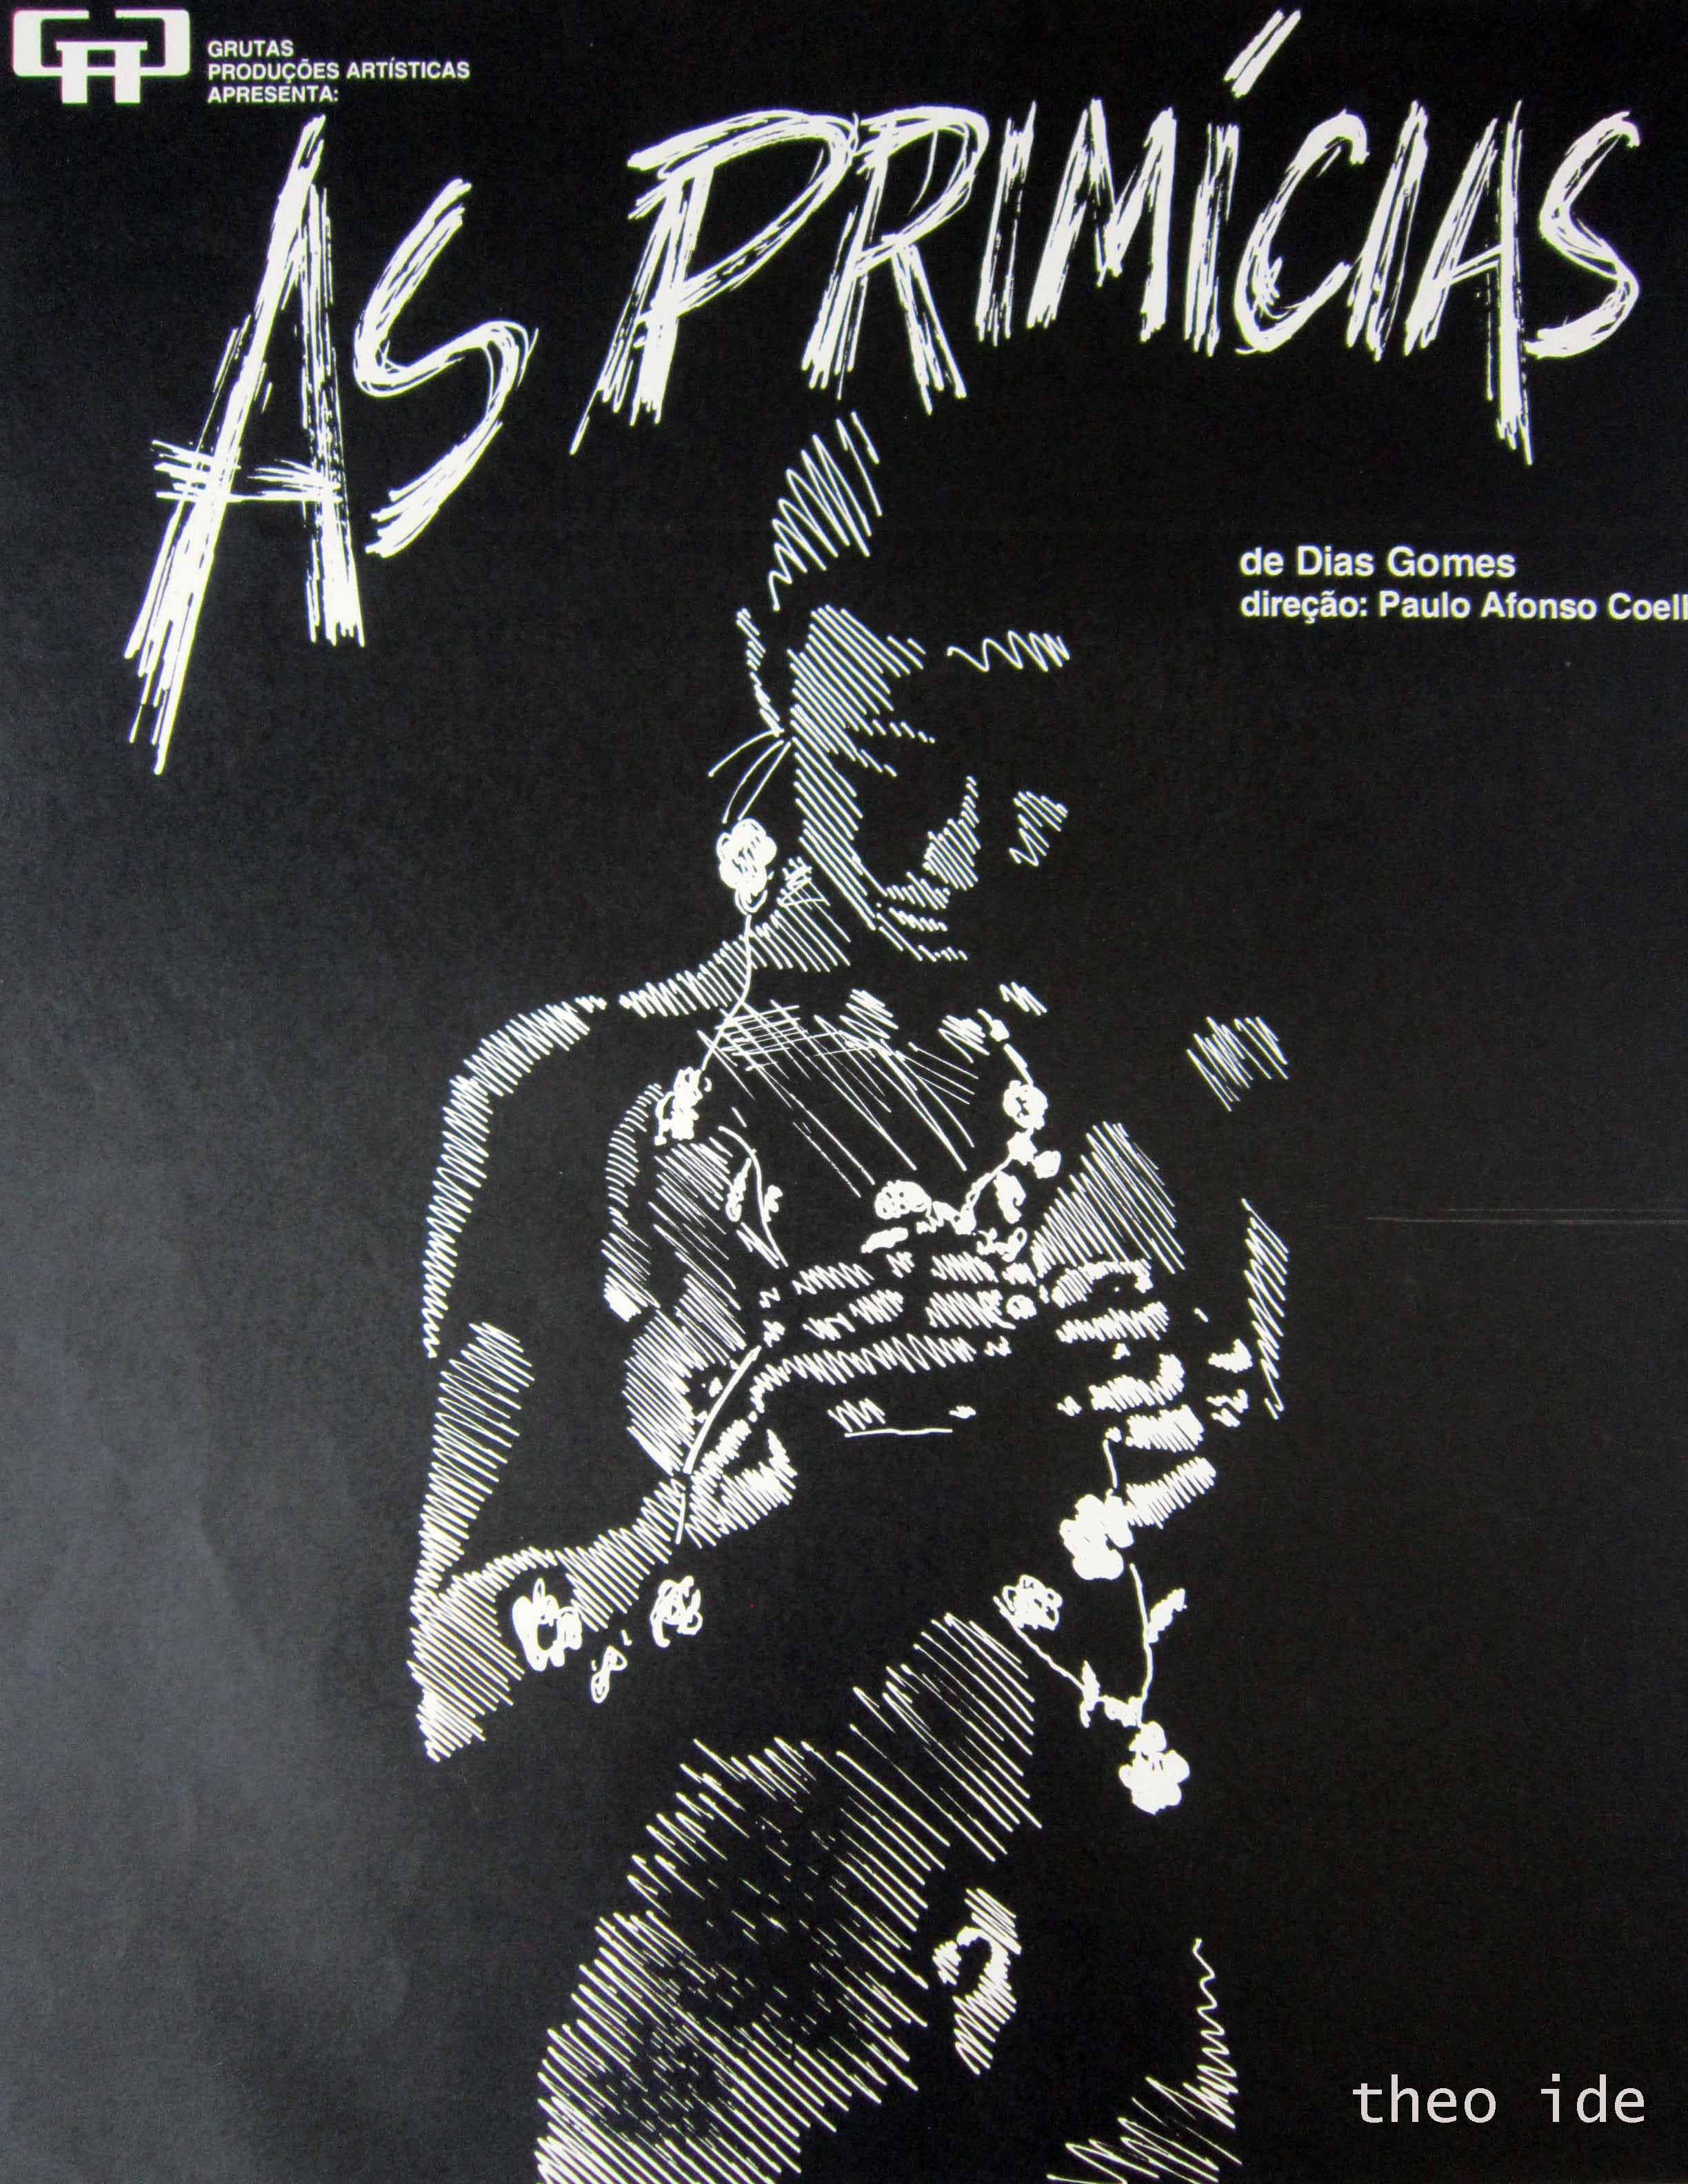 "Piece of poster theater ""As Primícias"" by Dias Gomes, directed by Paulo Afonso Coelho Theatre Centro de Convivência of Campinas, São Paulo - Brazil in 1986. Illustration Theo Ide / layout W.Paré  Inspired by David Hamilton Photography Cartaz de peça de teatro ""As Primícias"" de Dias Gomes,  direção de Paulo Afonso. Coelho Teatro Centro de Convivência de Campinas, São Paulo - Brasil em 1986. Ilustração Theo Ide / diagramação W.Paré - Inspirado na fotografia de David Hamilton"